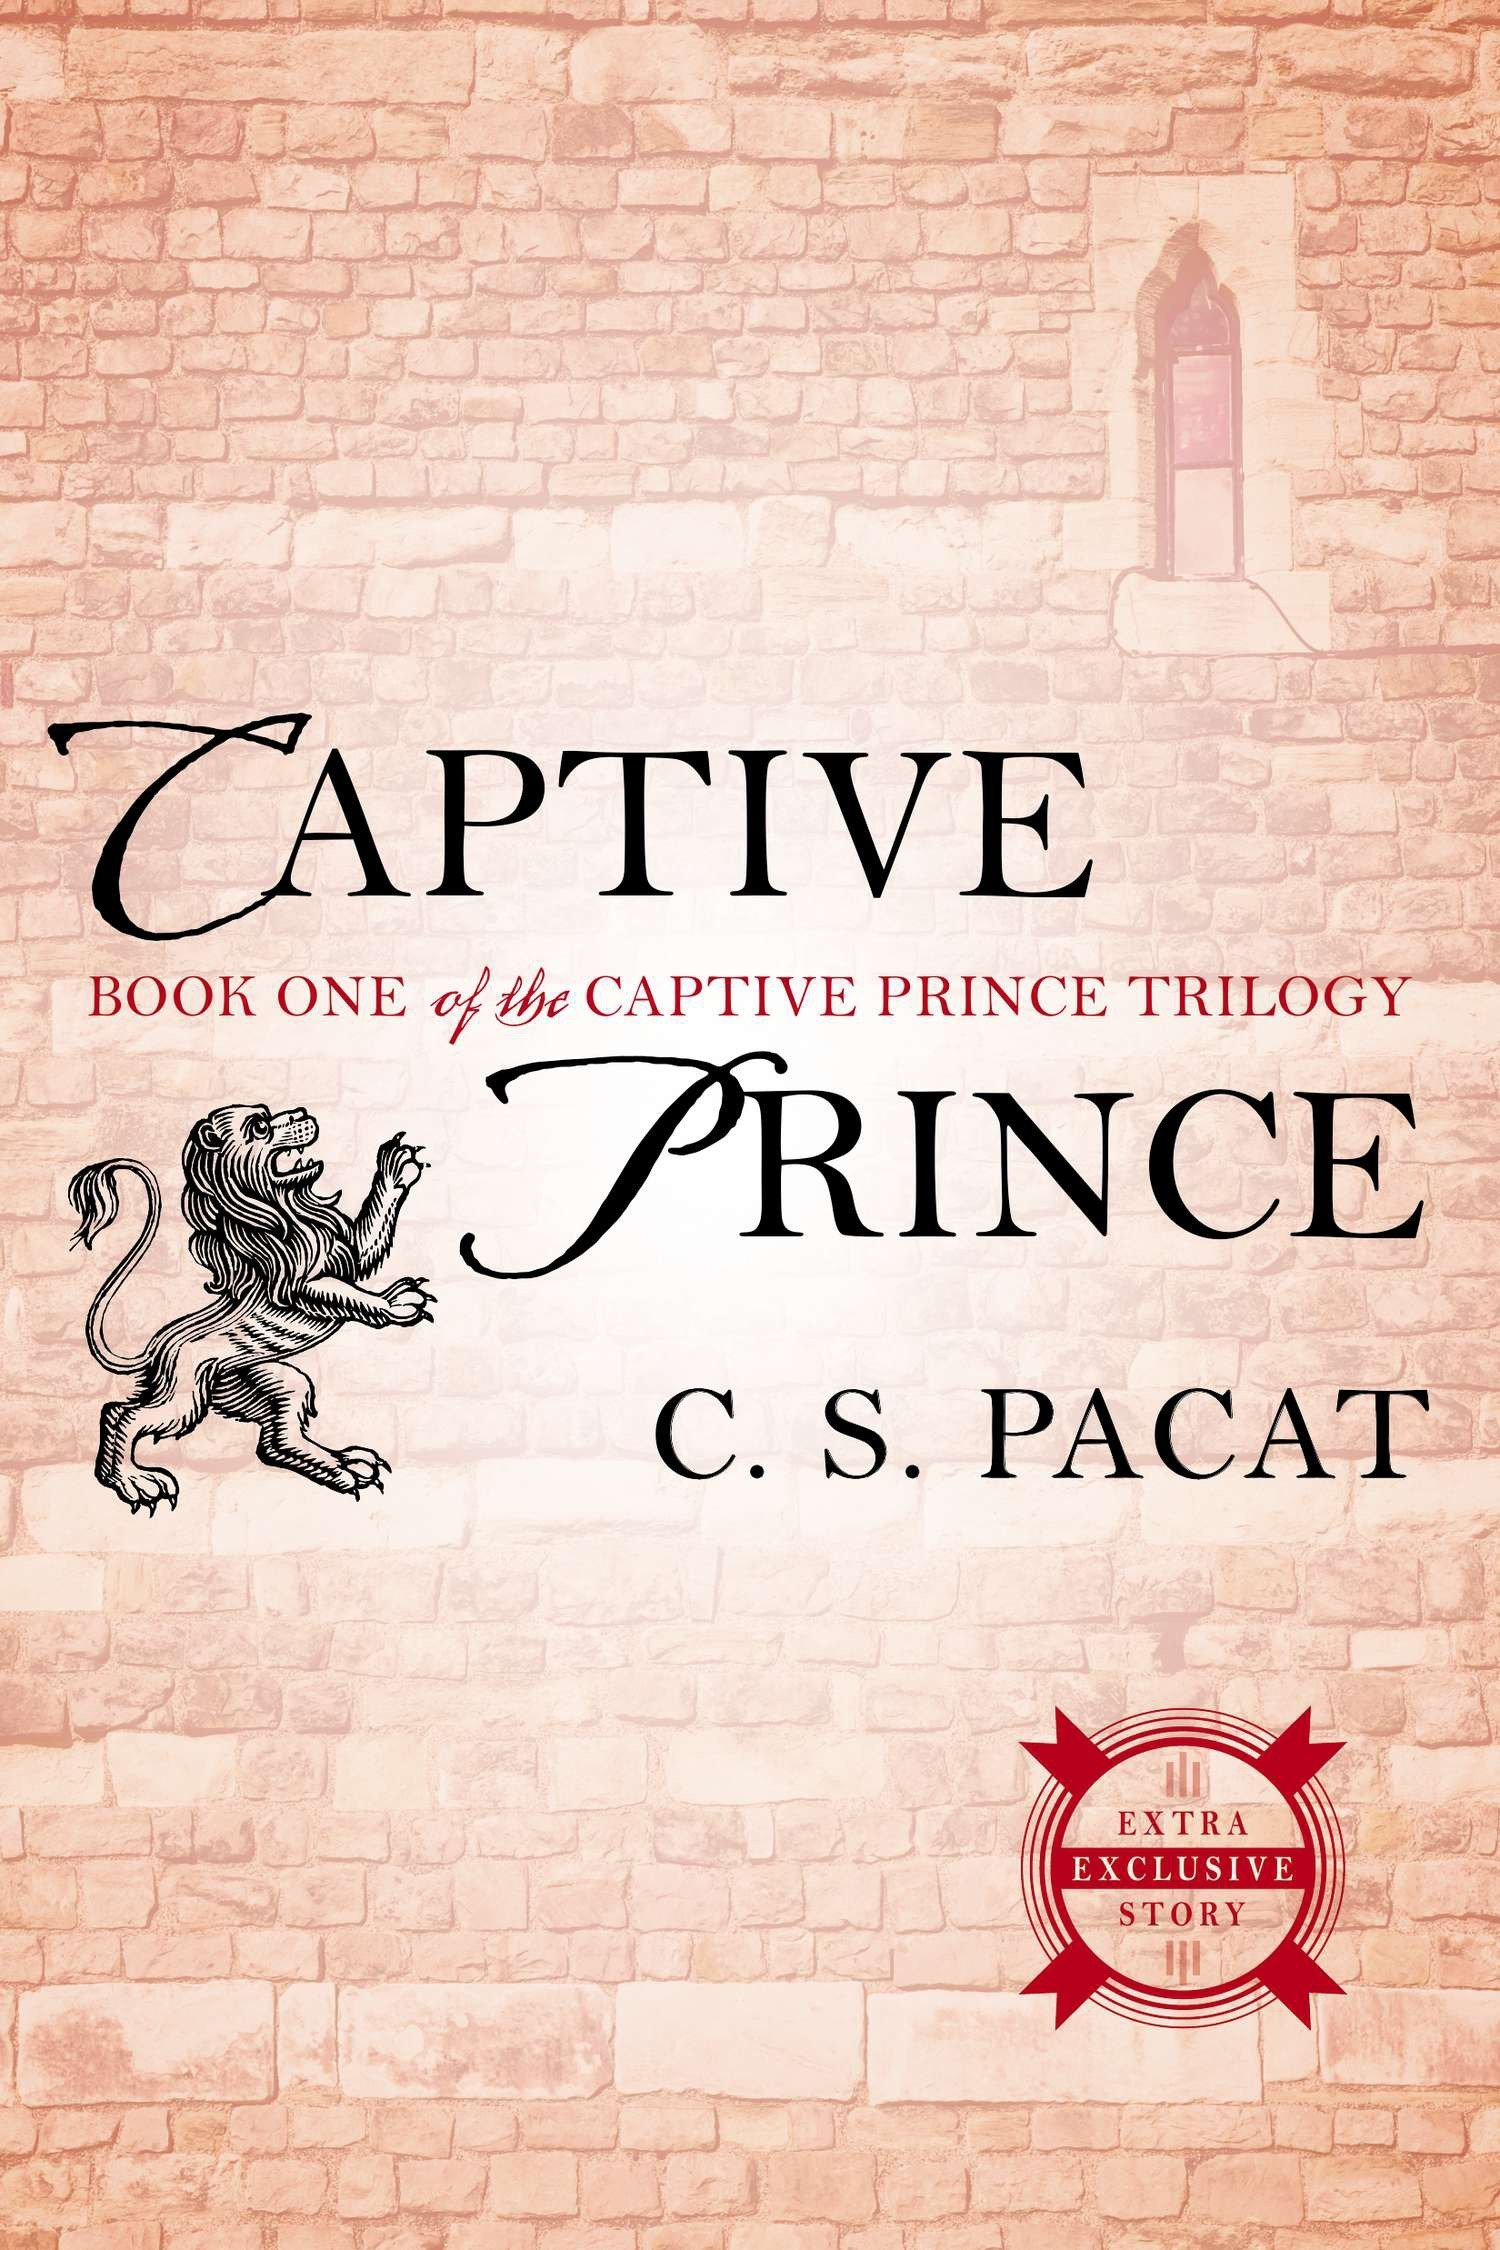 Captive Prince (The Captive Prince Trilogy) Paperback – April 7, 2015 C. S. Pacat Berkley 0425274268 Monarchy